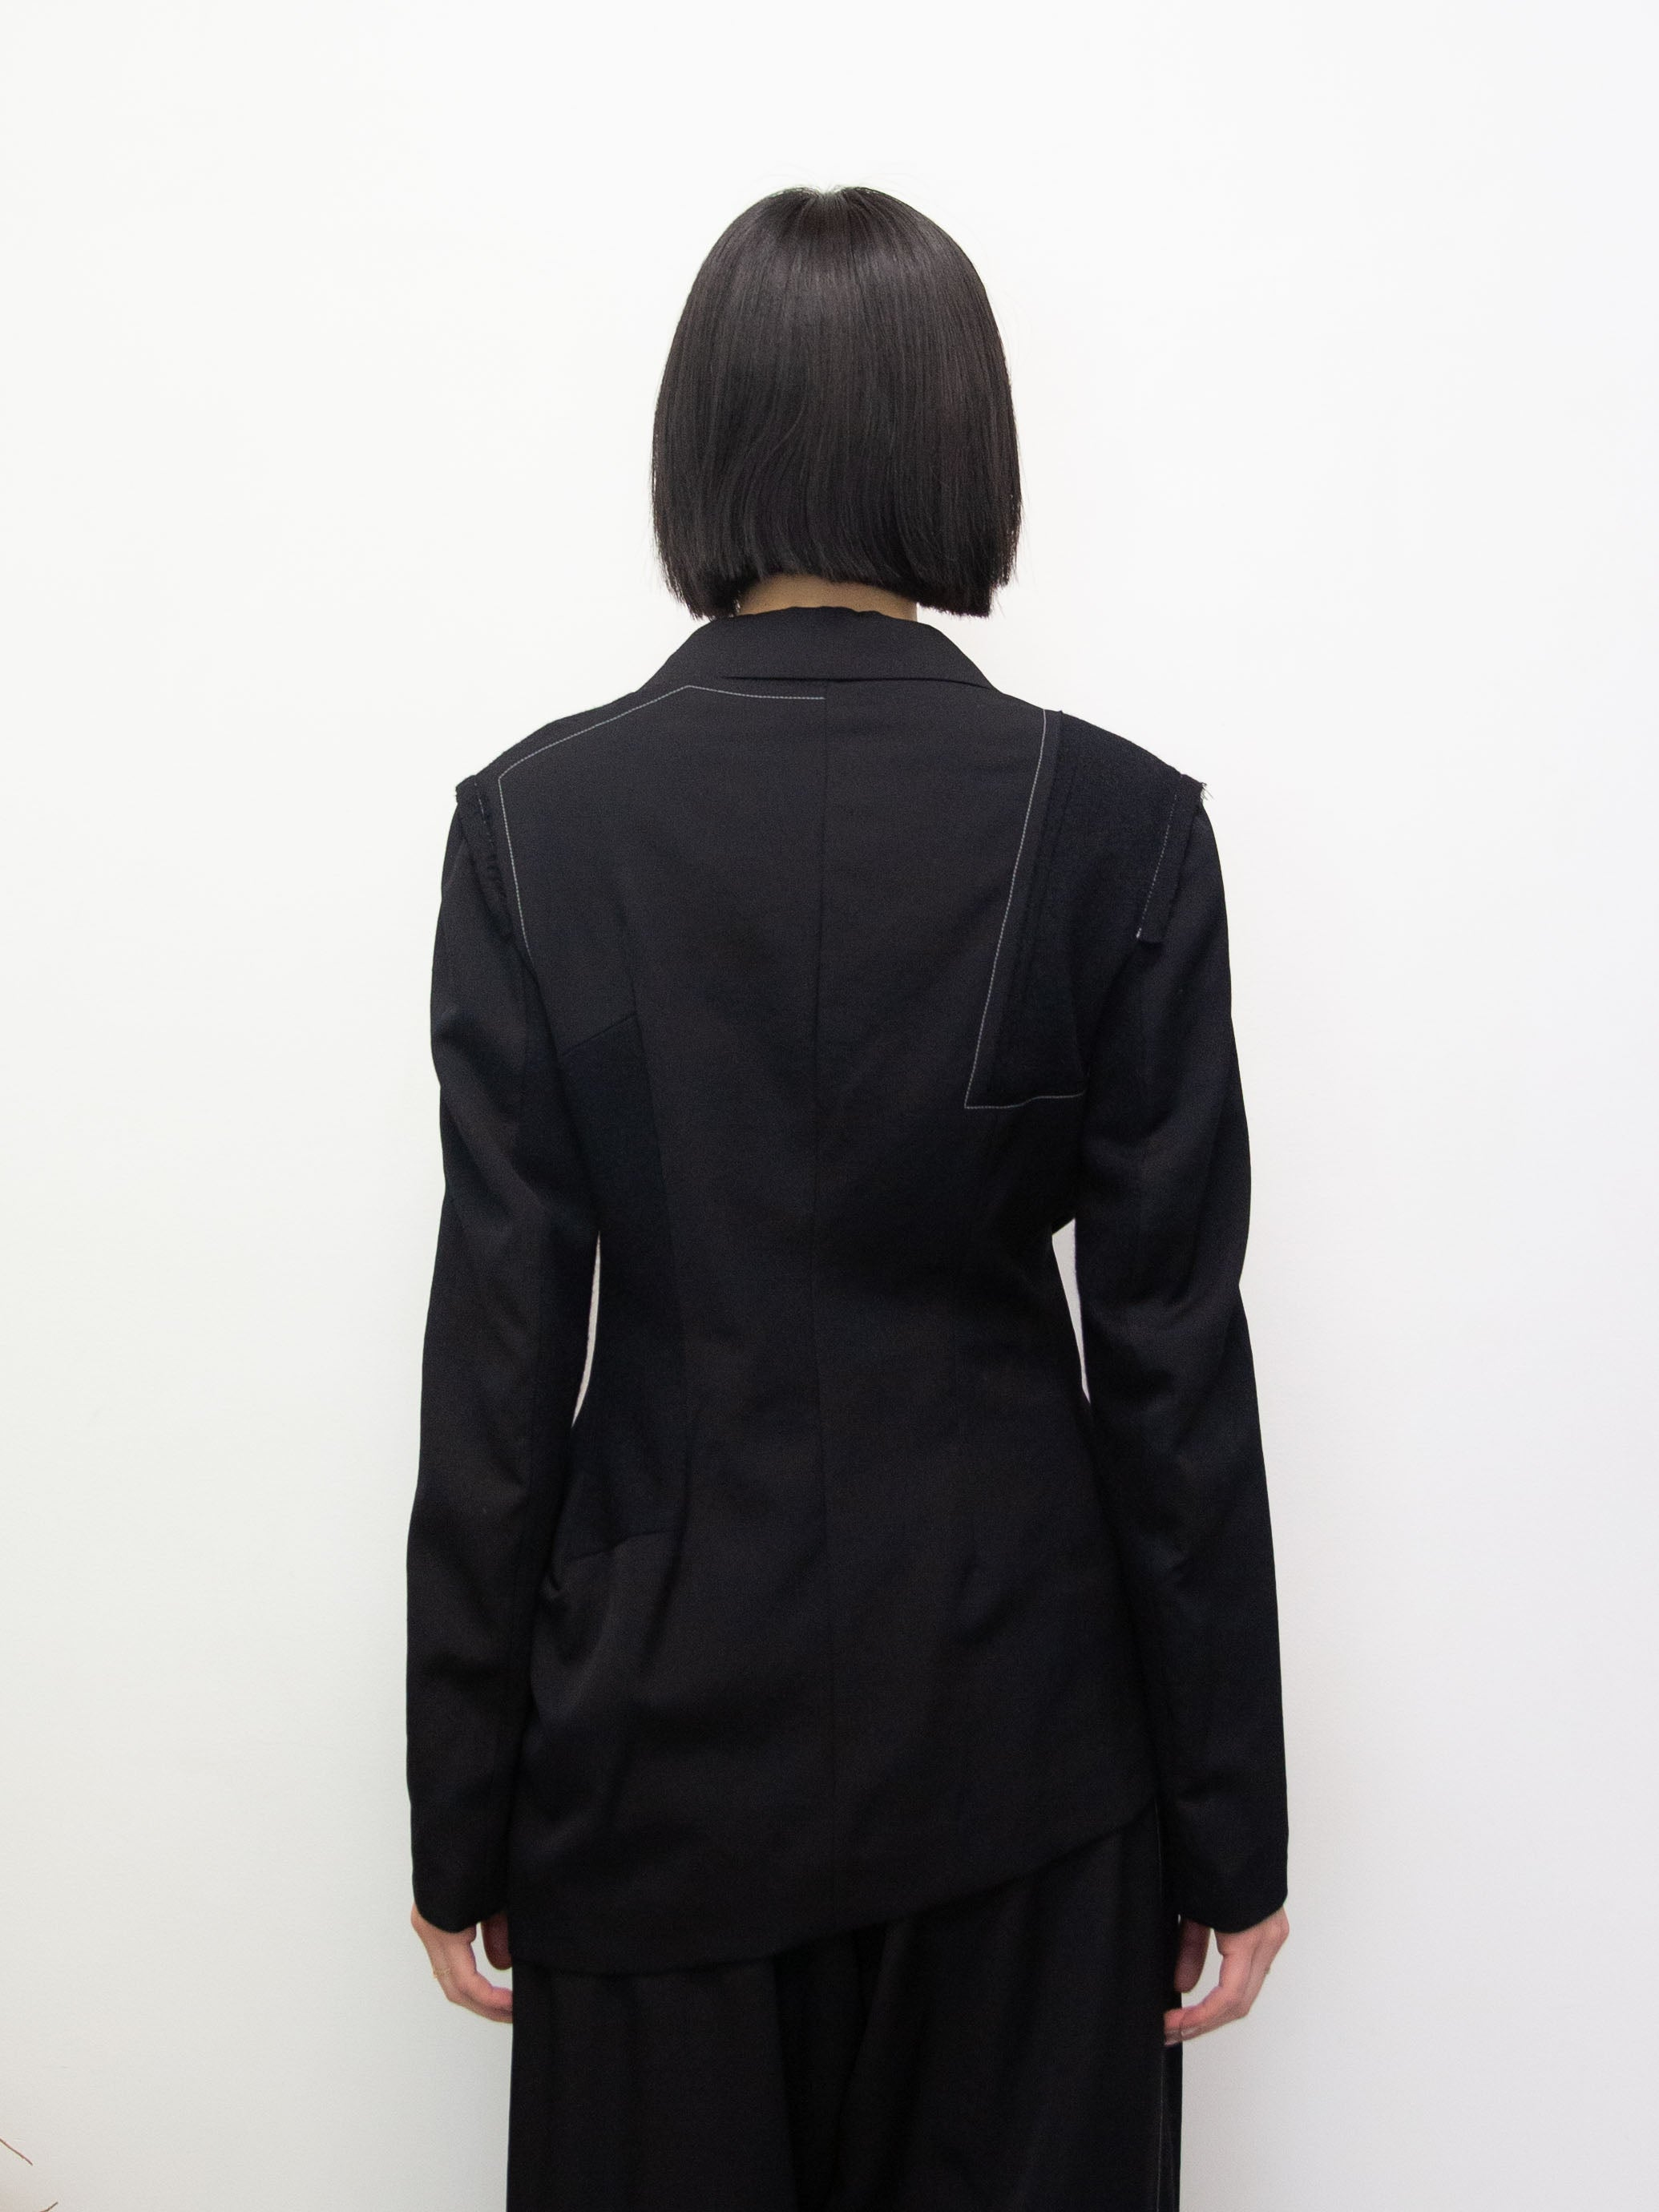 Y's Asymmetric Cut and Sewn Panel Jacket